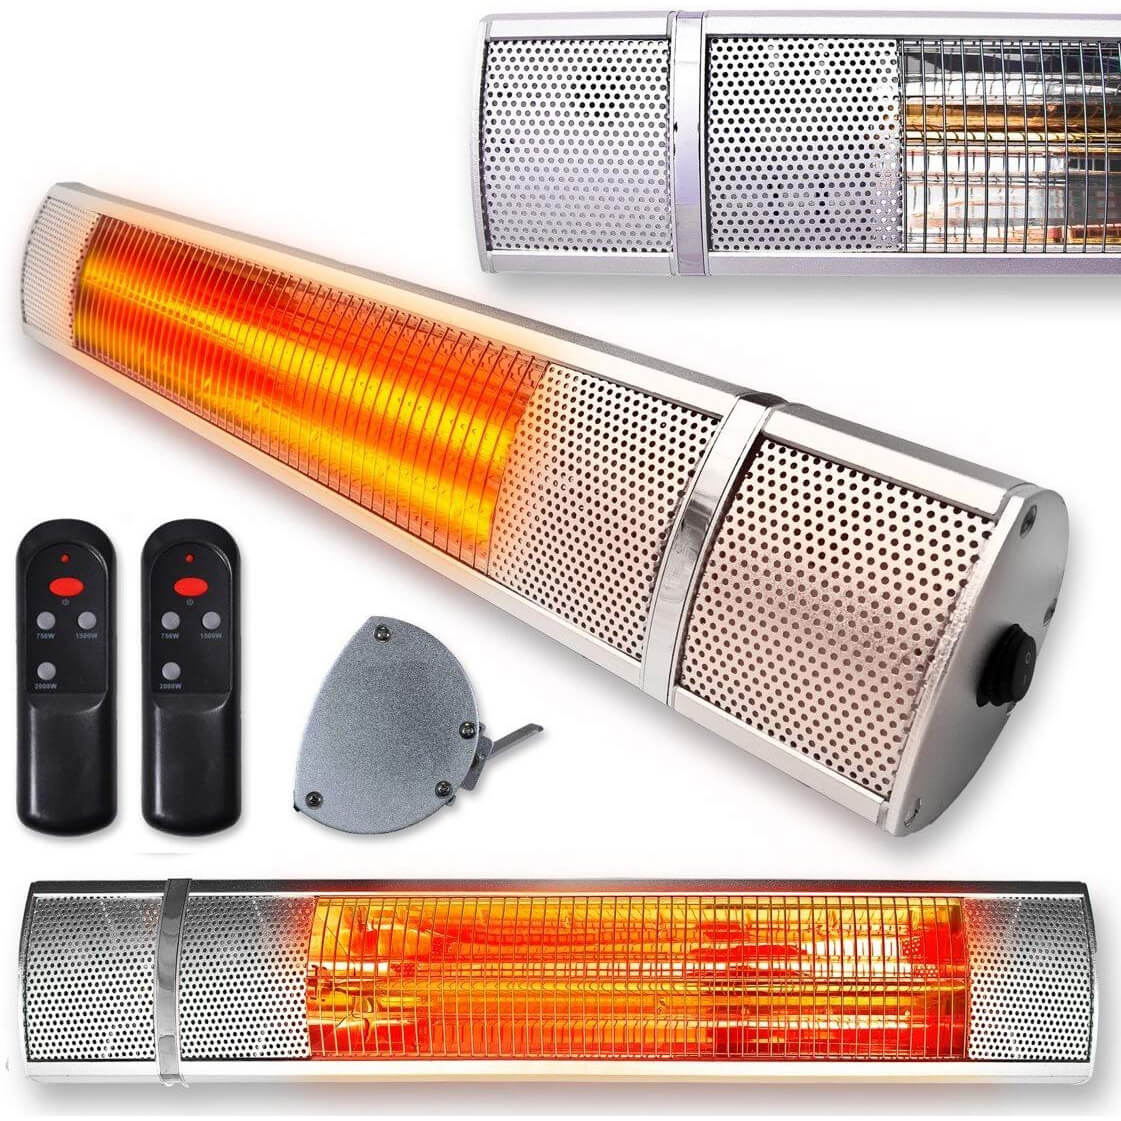 Futura Deluxe Wall Mounted Electric Infrared Patio Heater